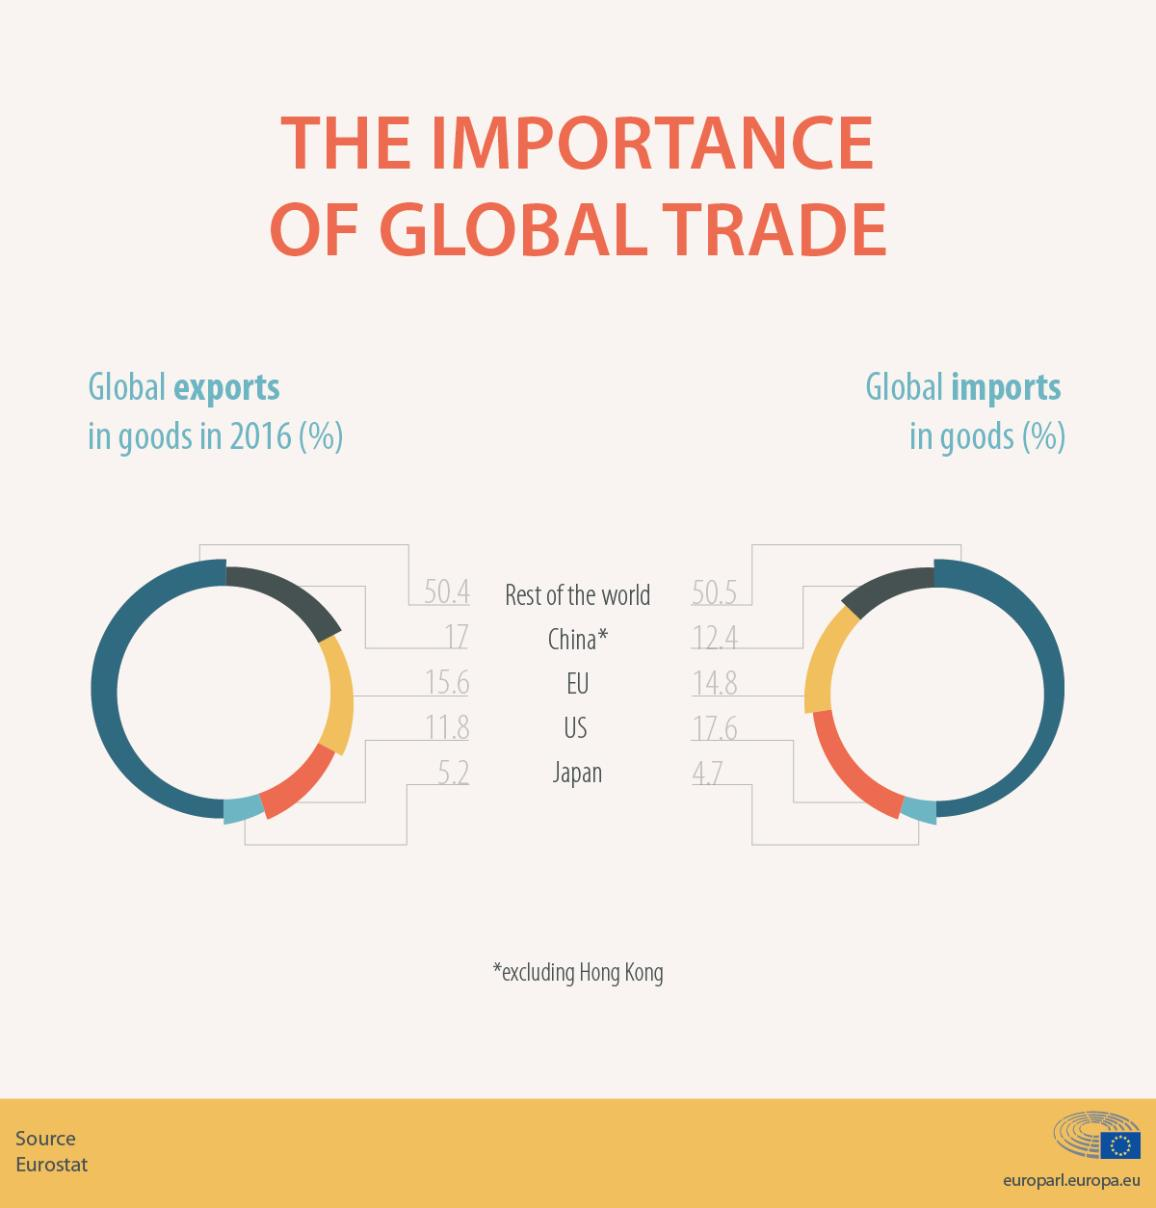 infographic on share of EU imports and exports in global trade in 2016